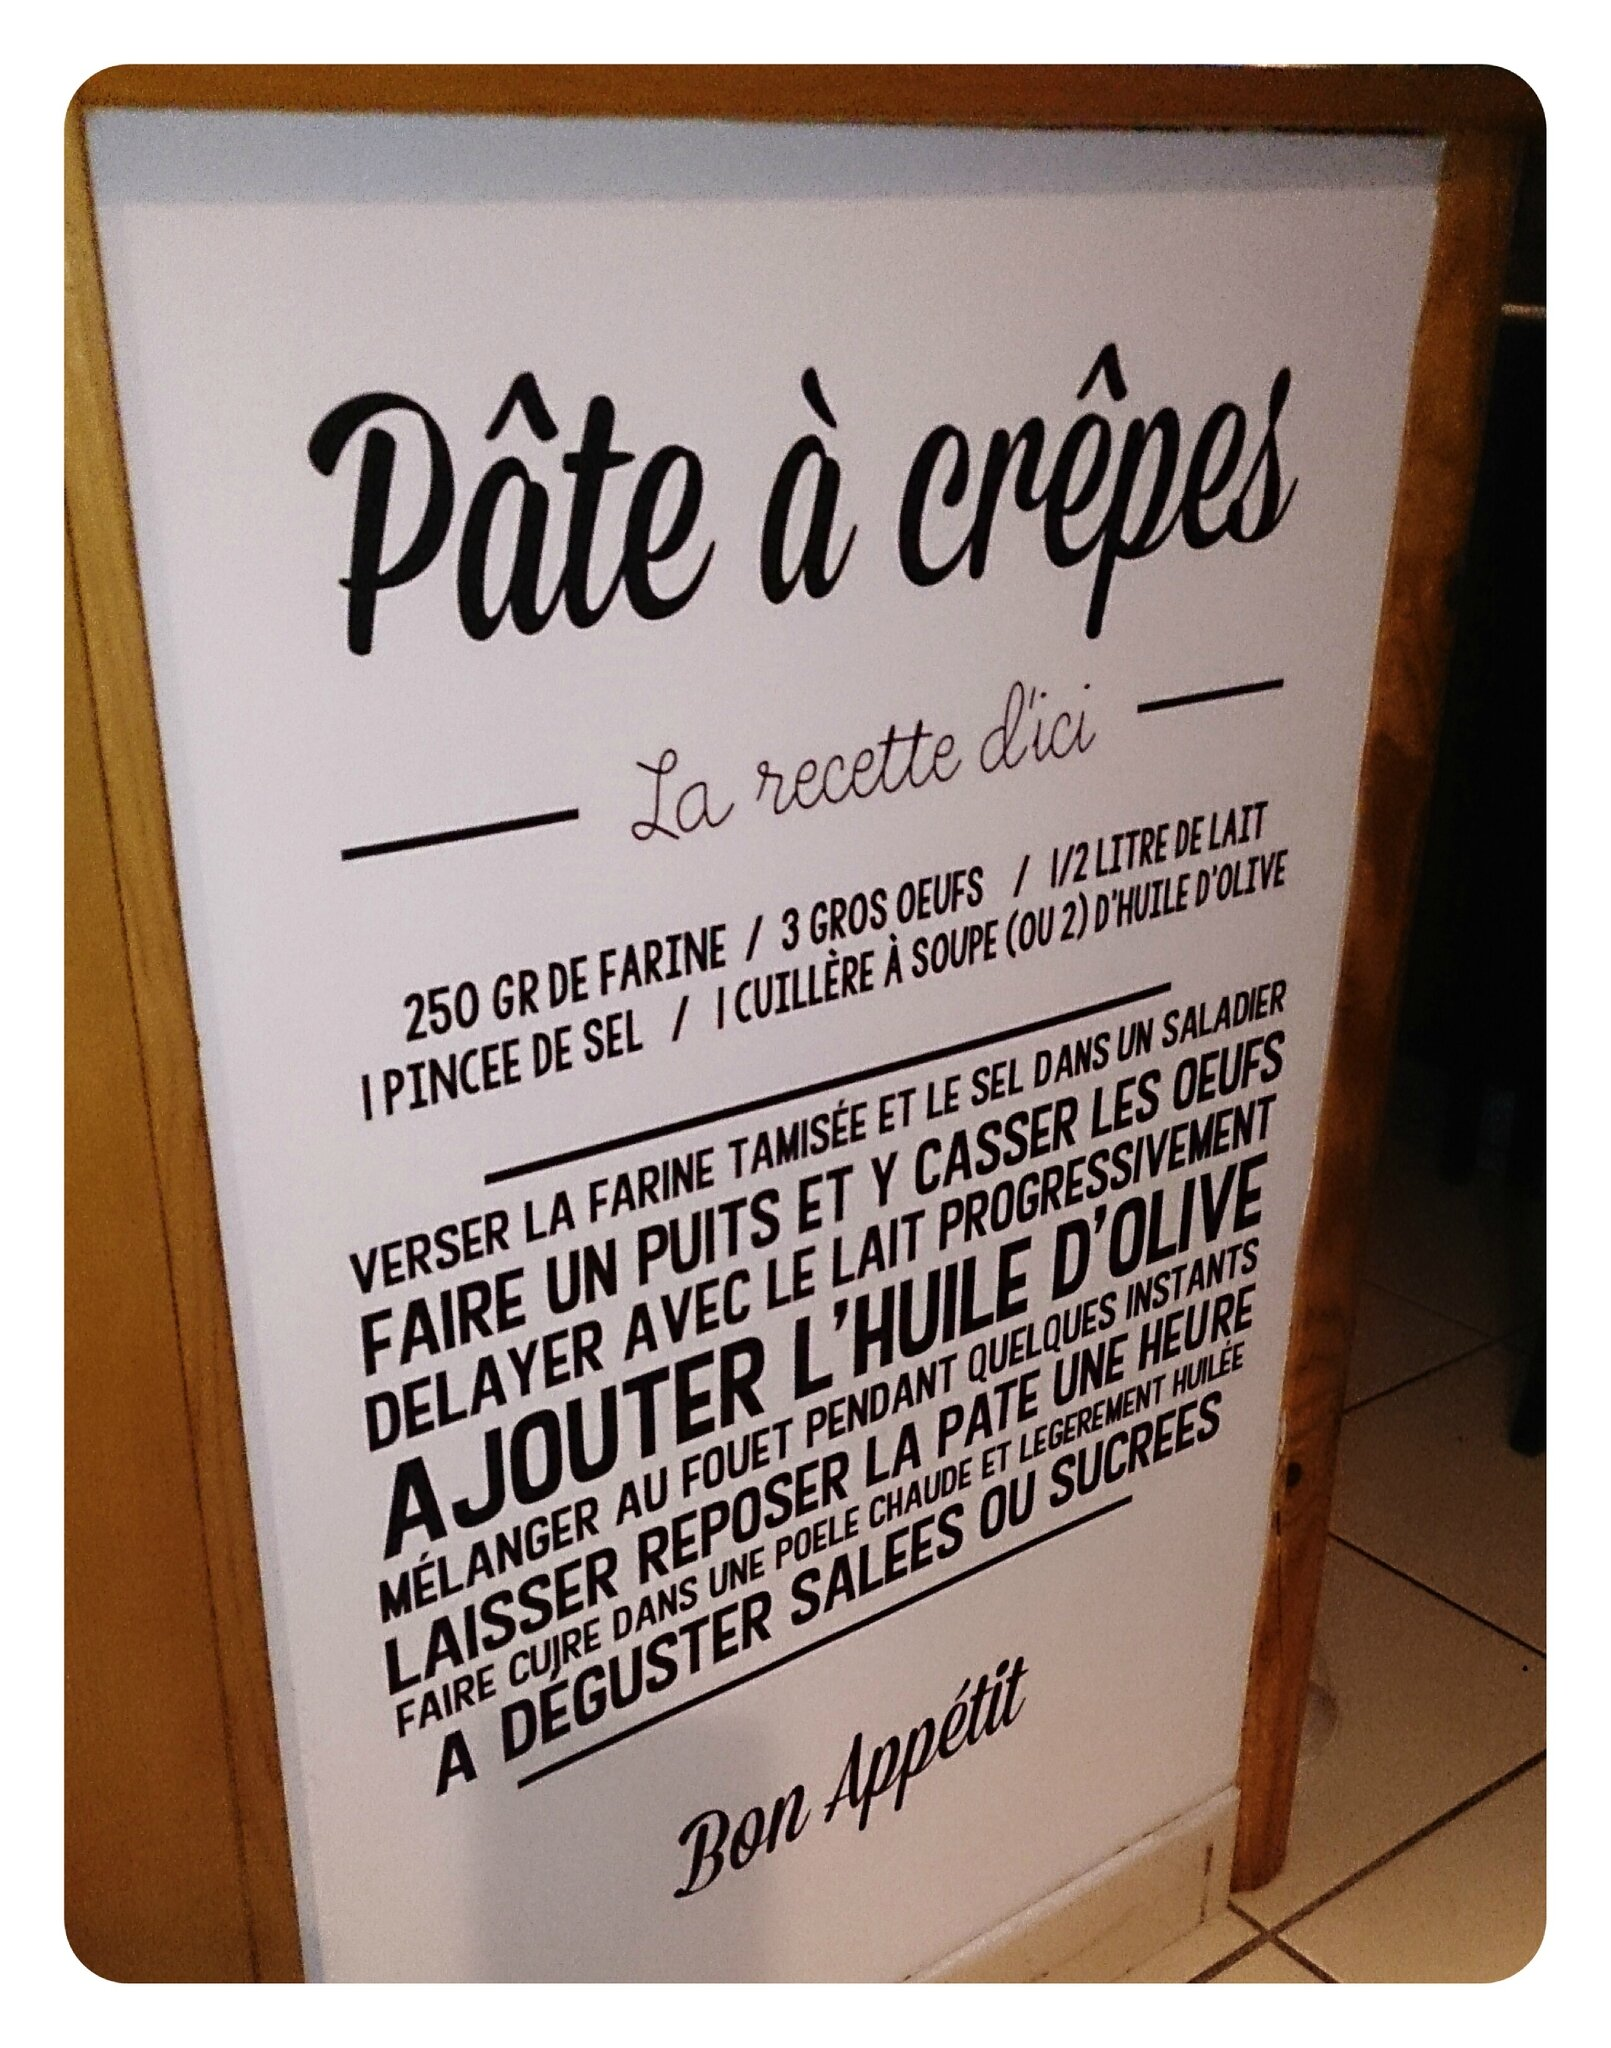 Stickers Recette Pate A Crepes Sc Creations